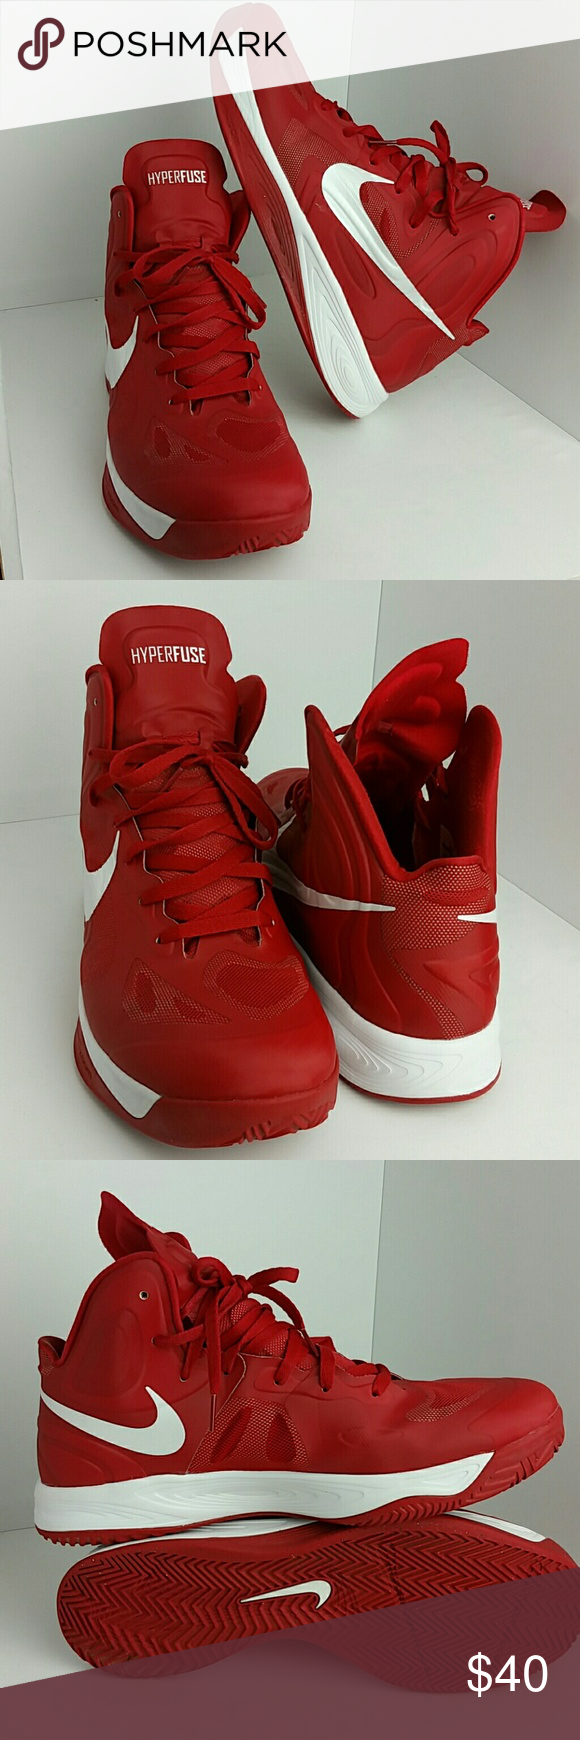 ... nike hyperfuse mens shoes very clean inside out ske jl nike shoes  athletic shoes